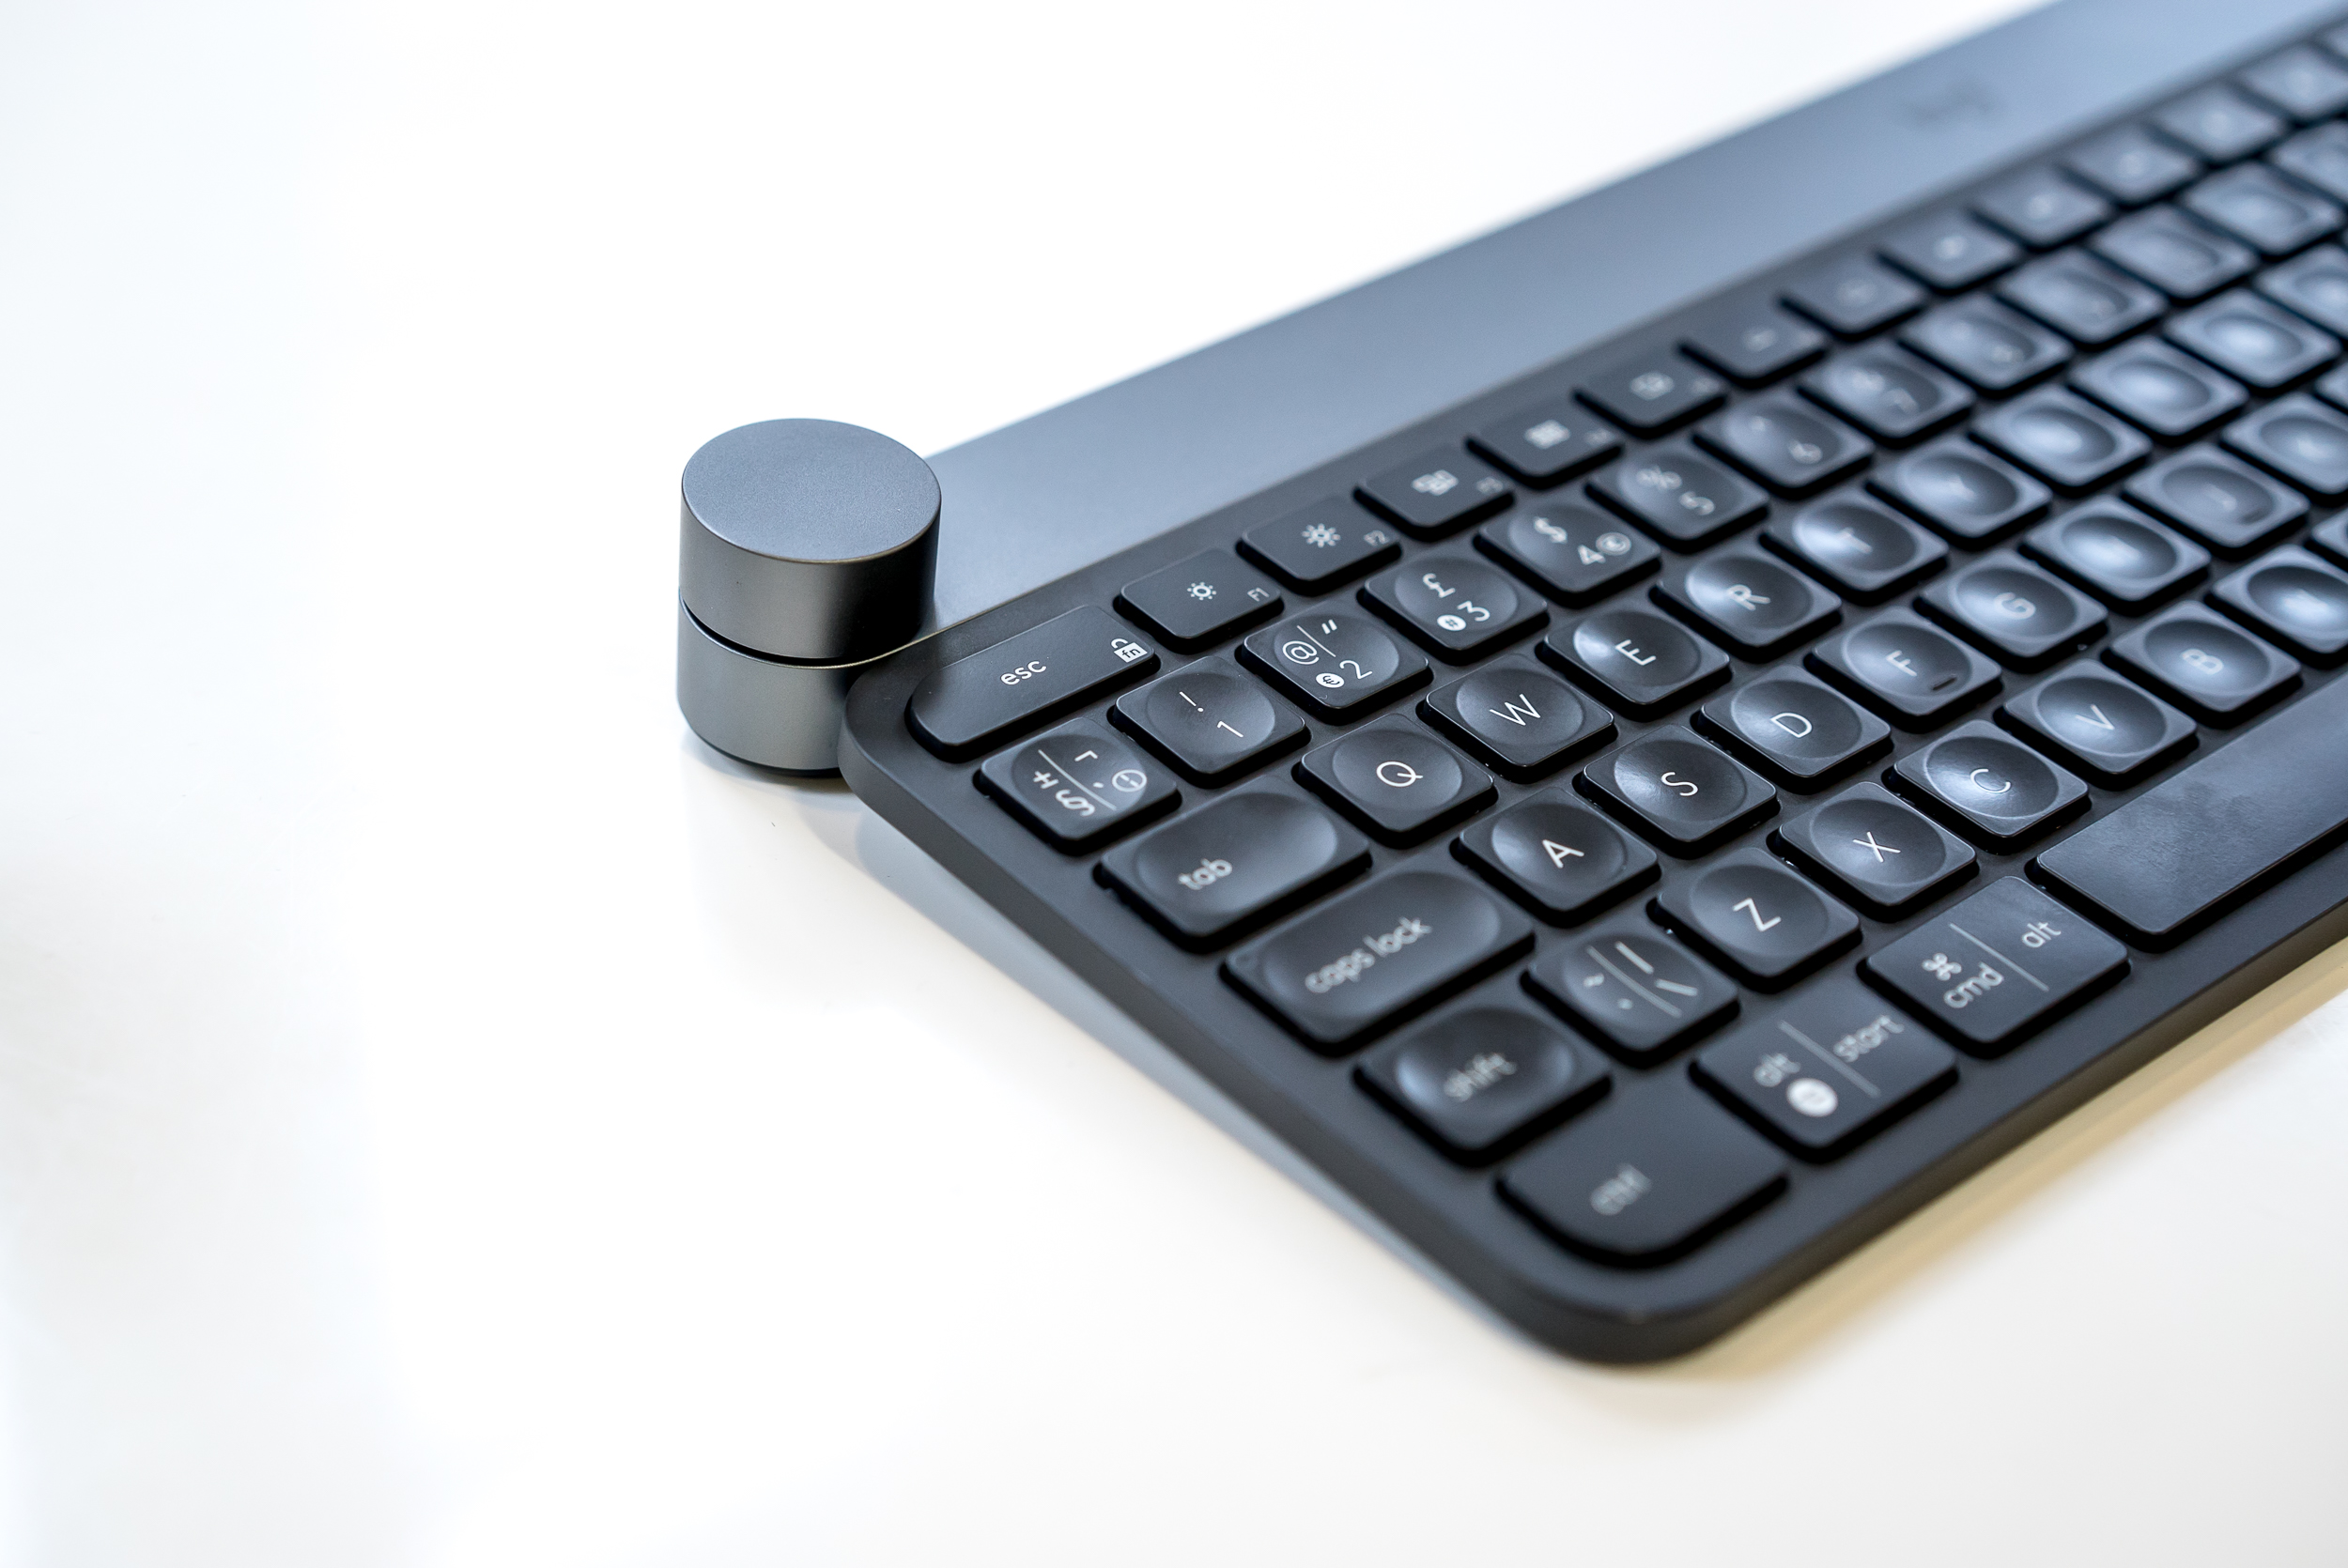 fbaefbf4722 Logitech Craft review: A slick keyboard combo that takes on the ...